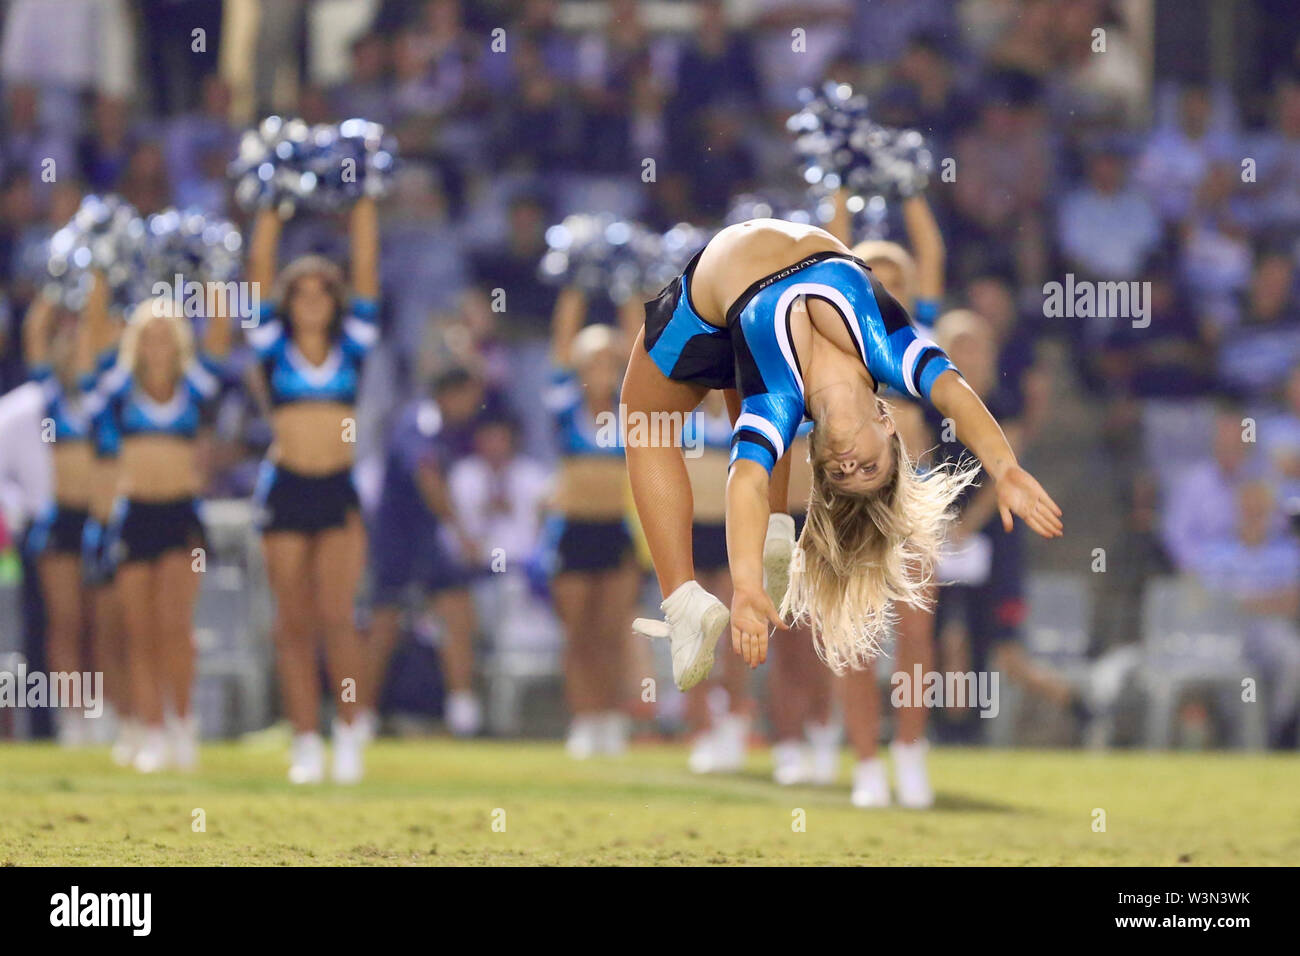 Cheerleaders. - Stock Image